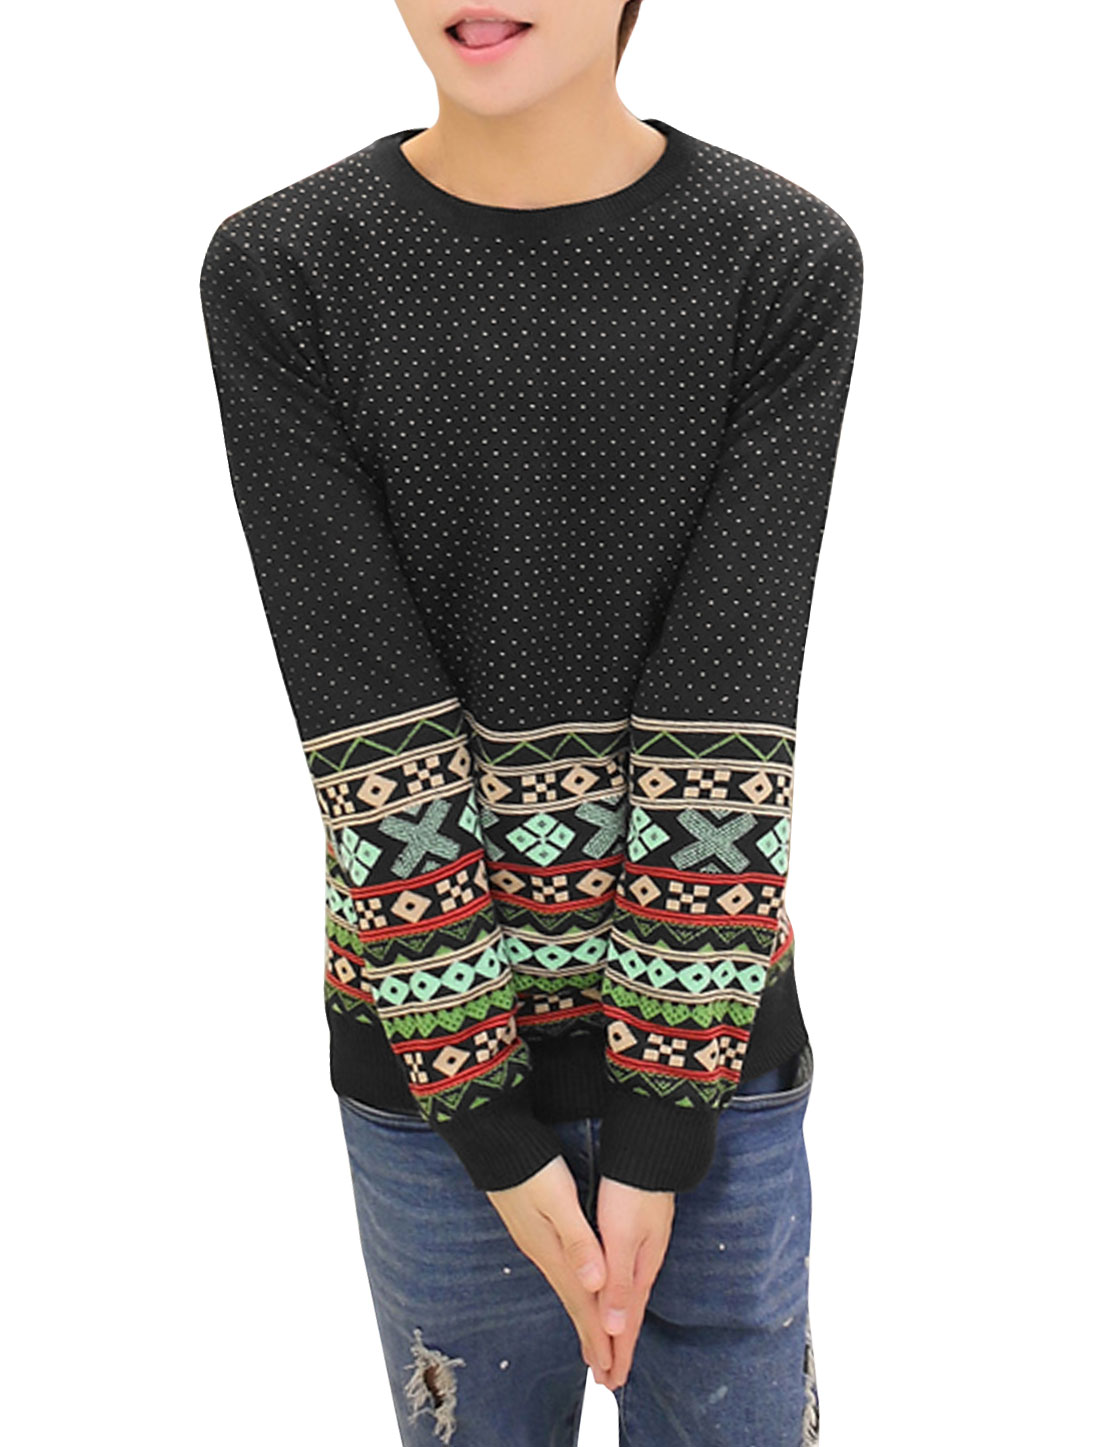 Men Ribbed Cuffs Geometric Novelty Dots Zigzag Pattern Sweater Black S